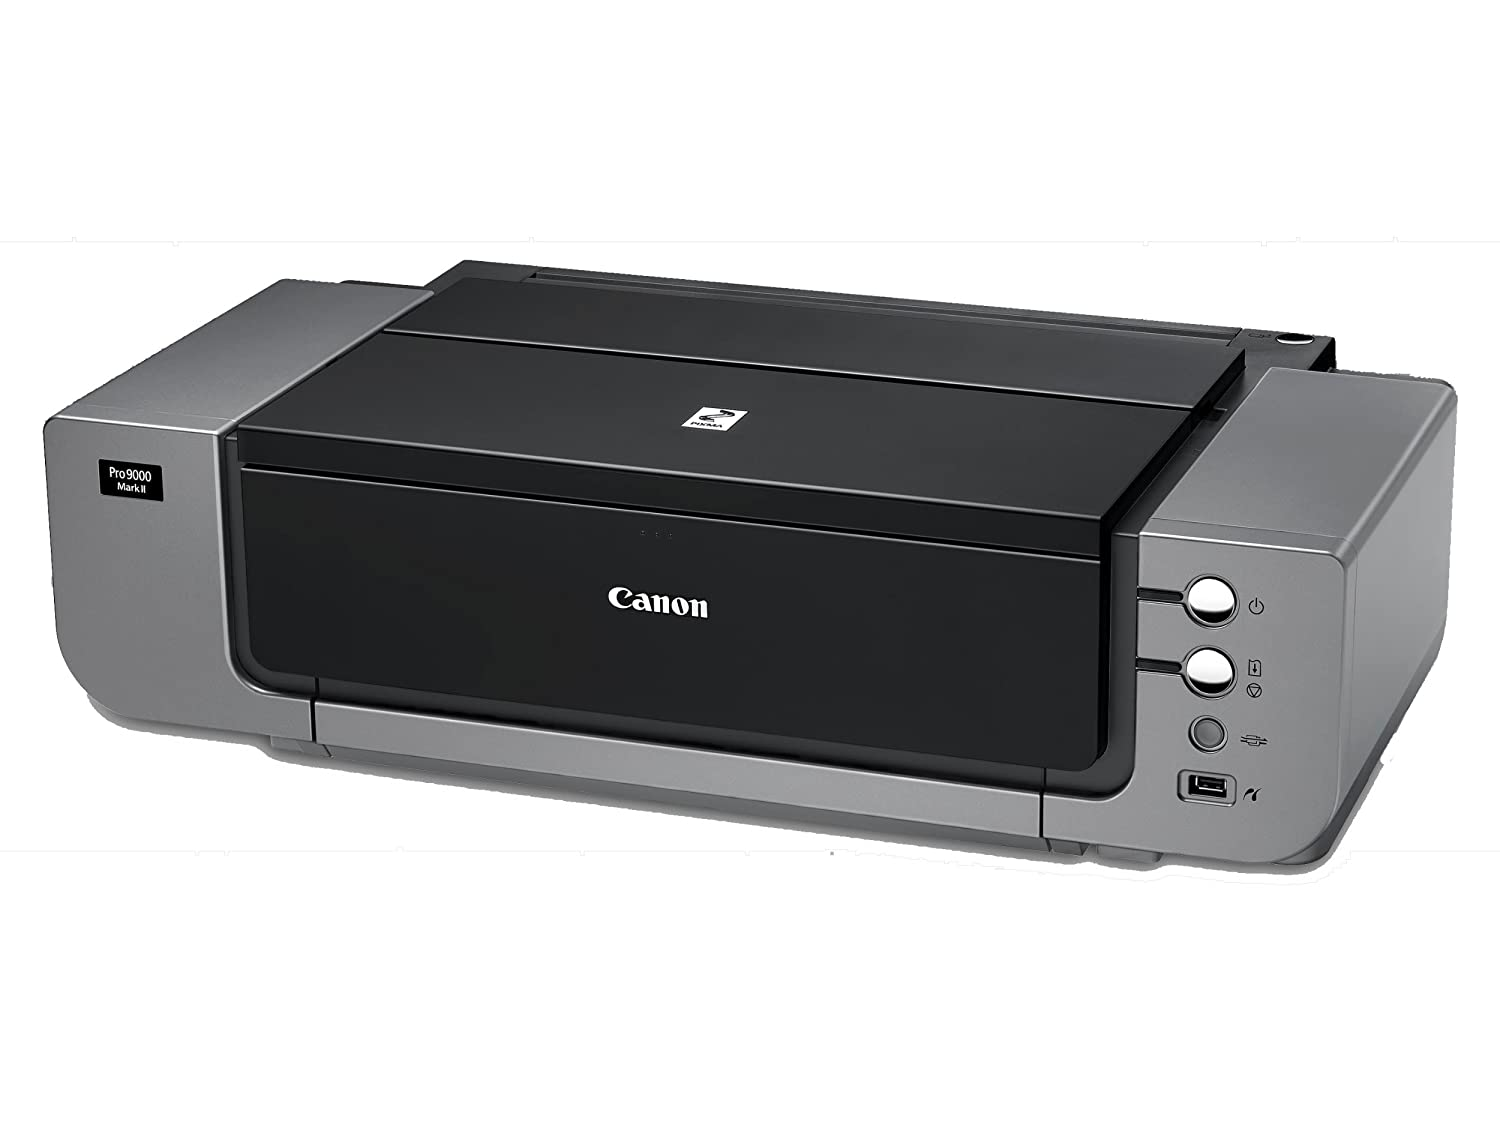 CANON PIXMA PRO9000 MARK II PRINTER DRIVERS WINDOWS 7